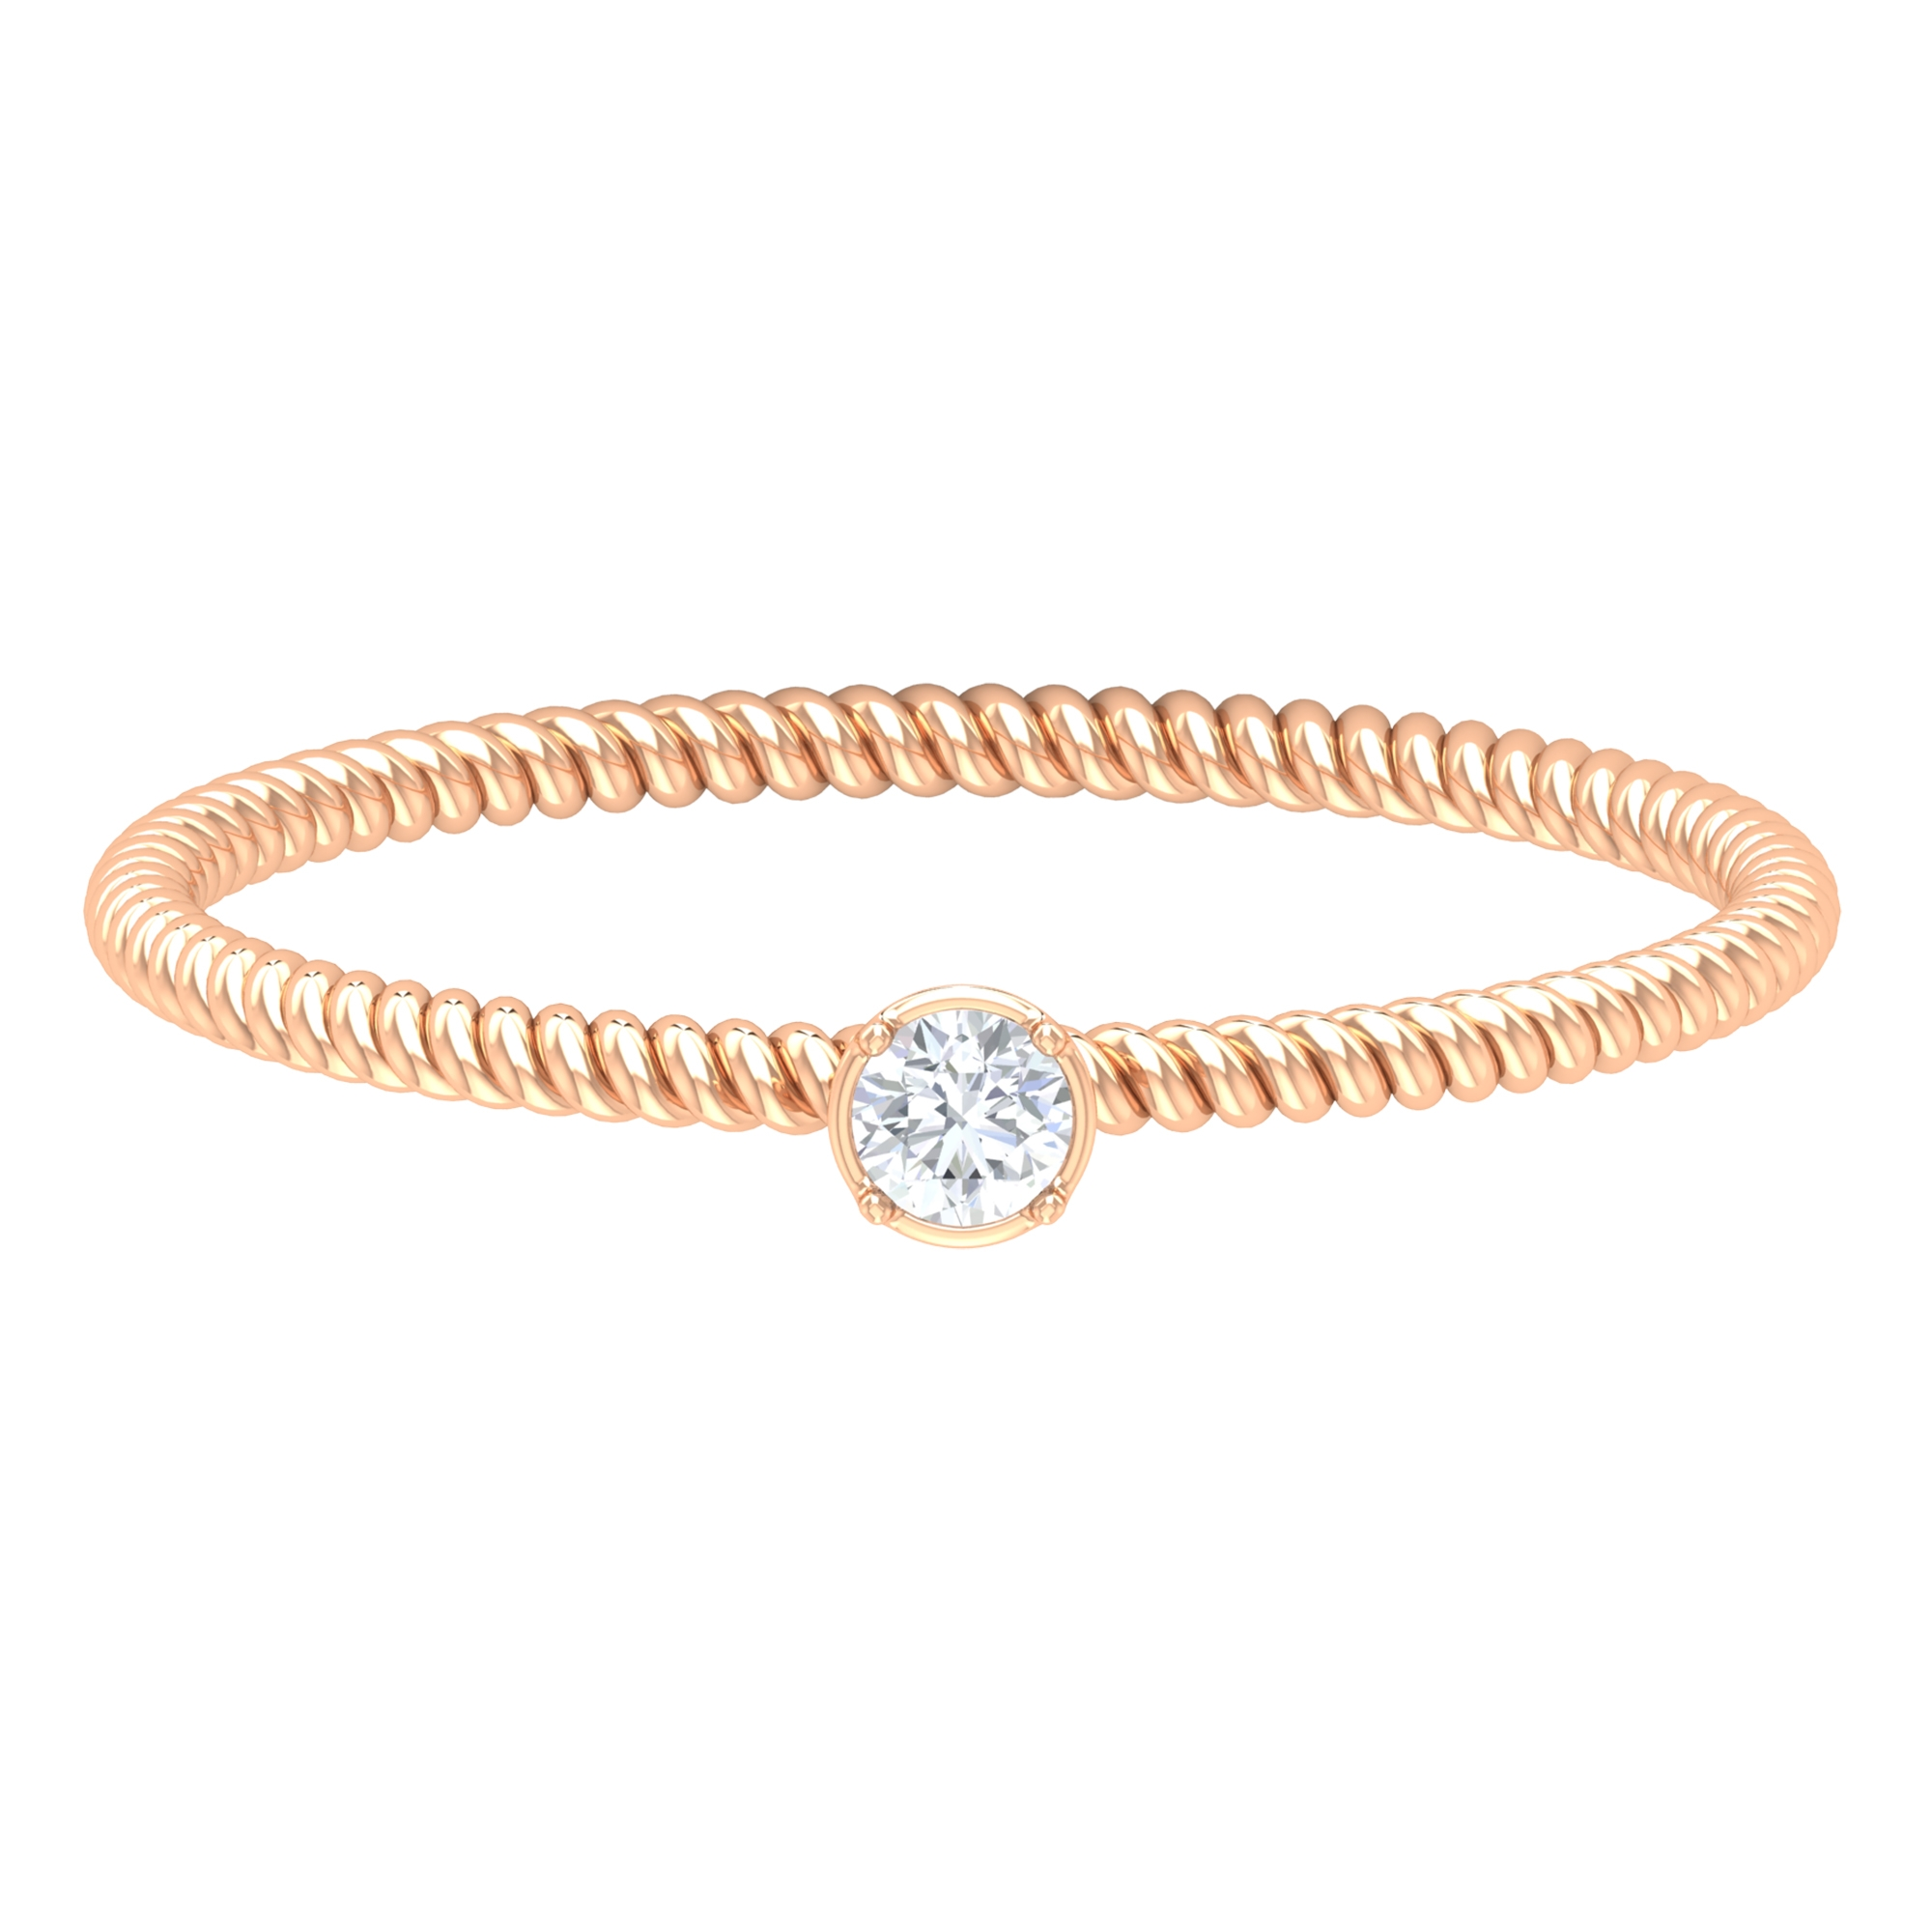 2.5 MM Round Cut Diamond Solitaire Ring in Scalloped Bezel Setting with Twisted Rope Details